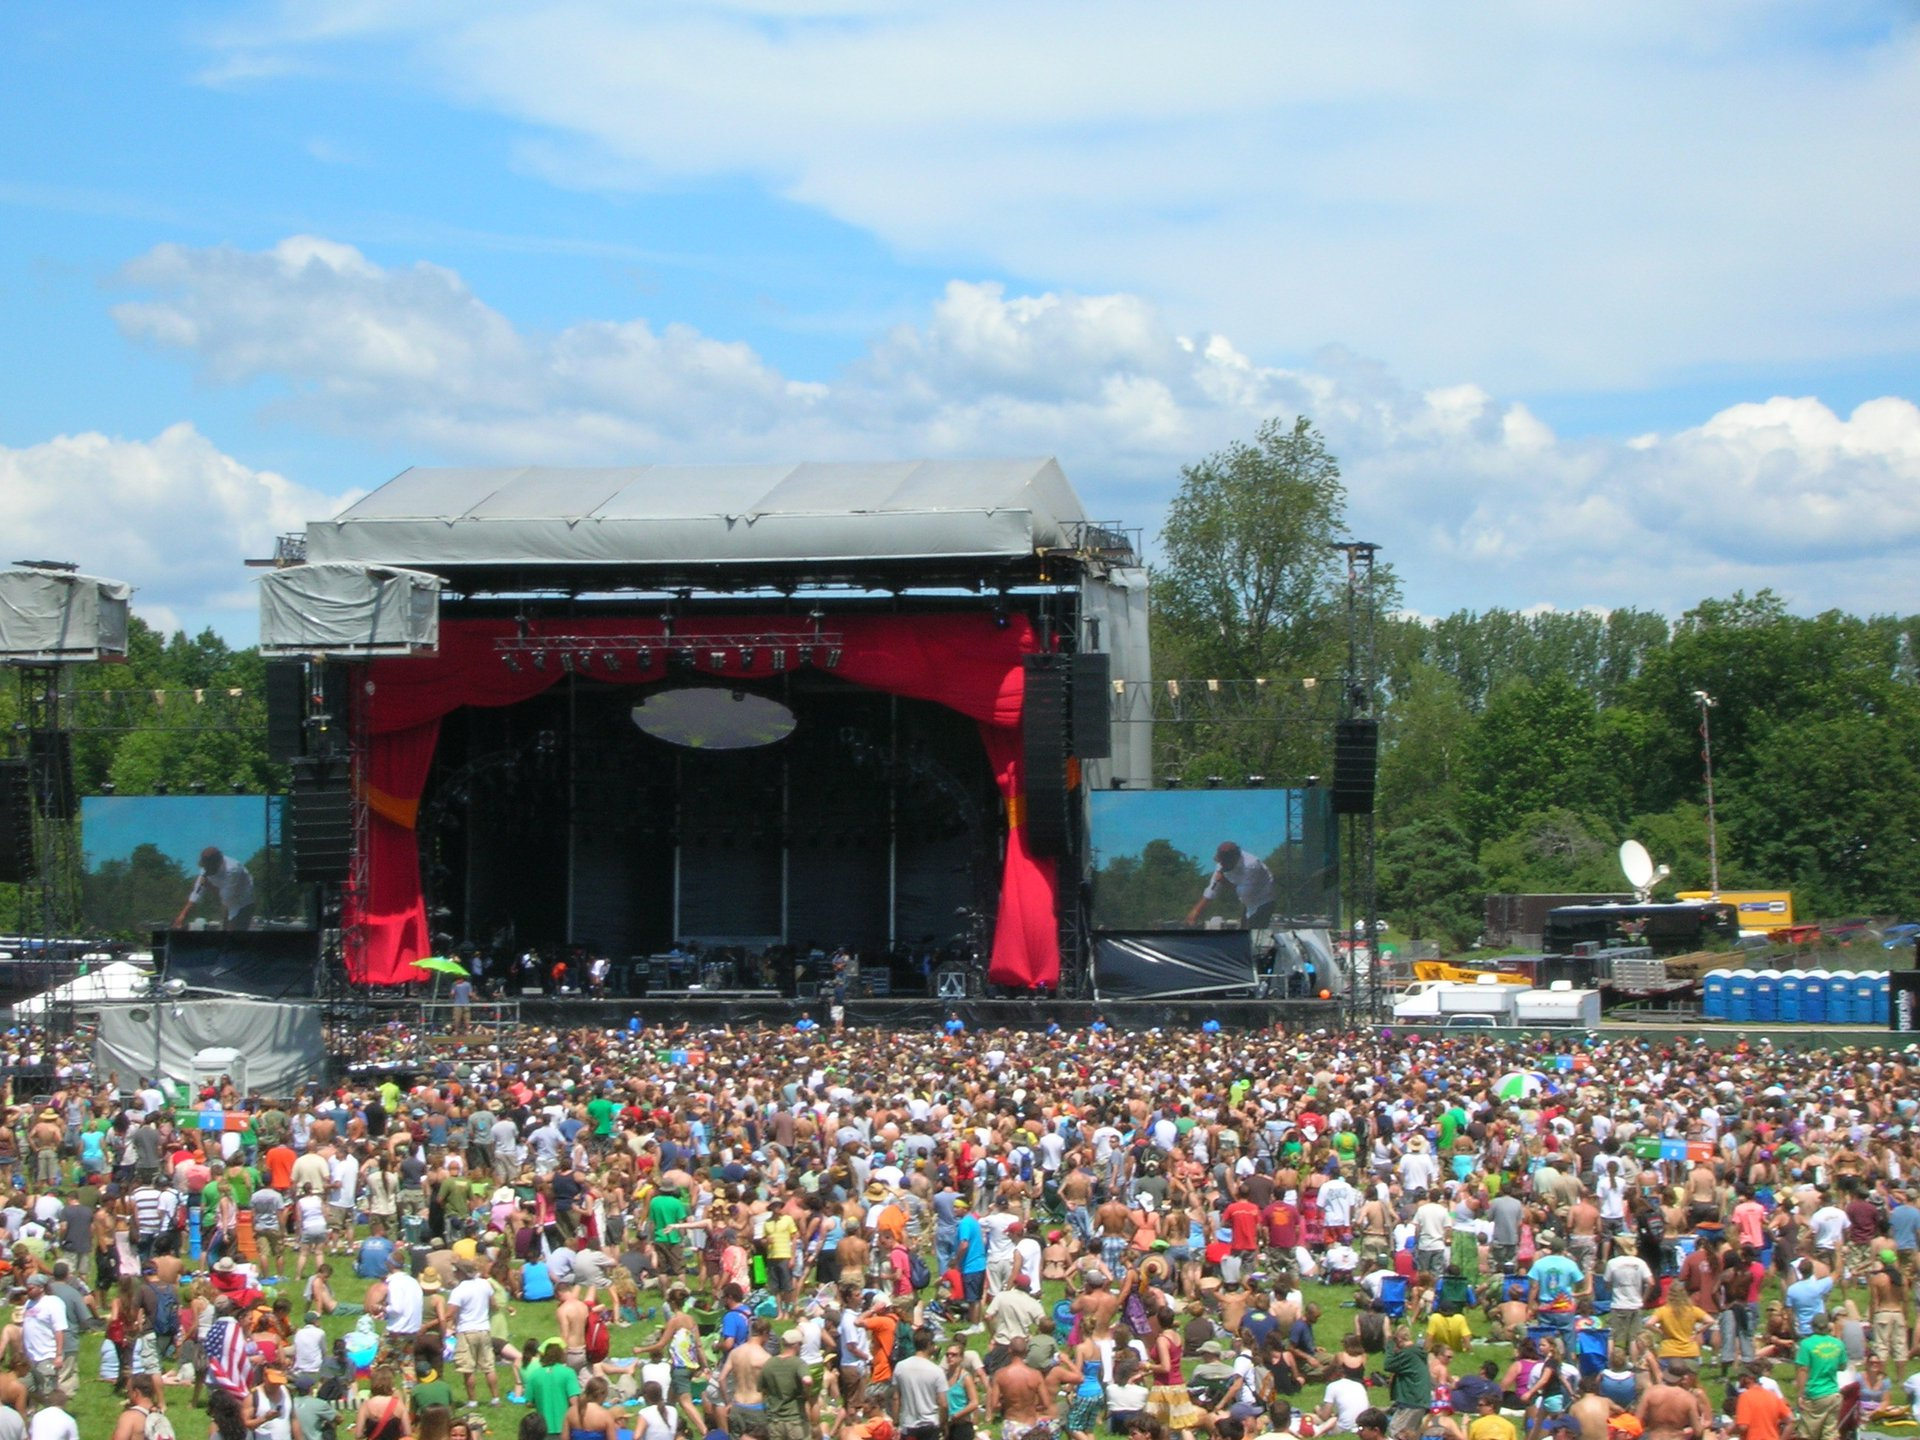 Mainstage at Rothbury during the Whalers